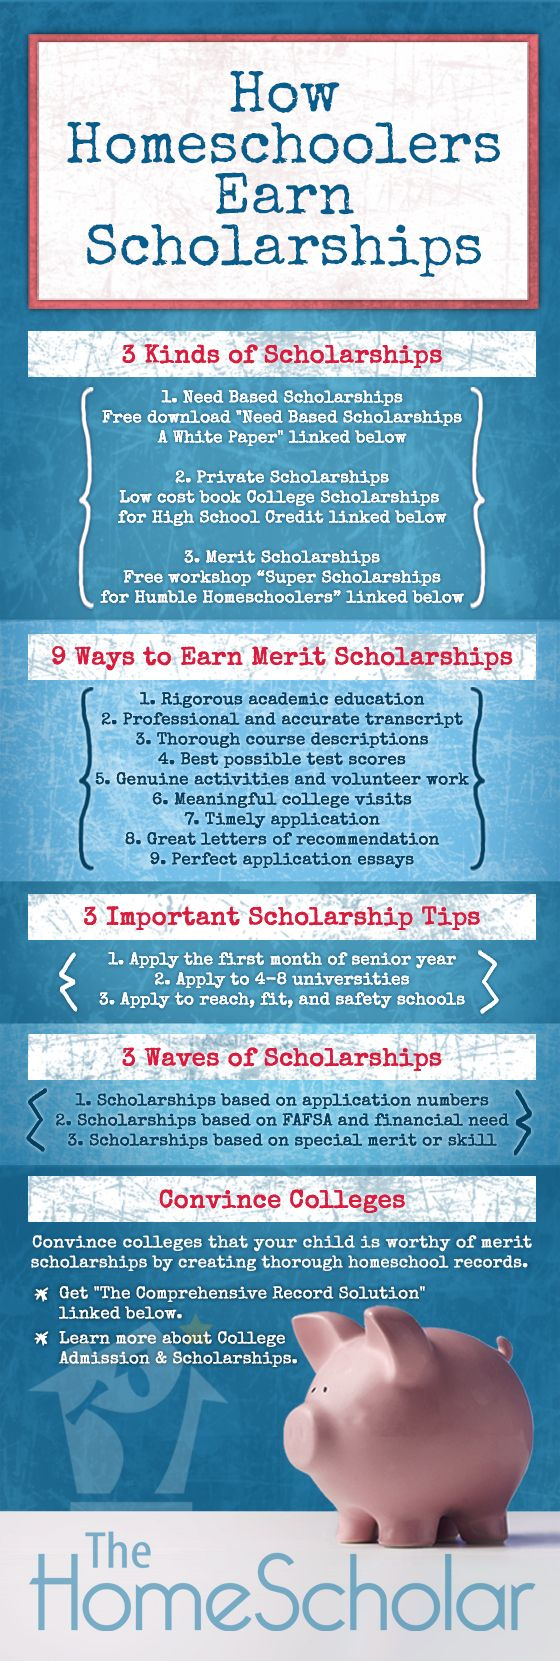 best ideas about high school organization high how homeschoolers earn scholarships homeschool thehomescholar